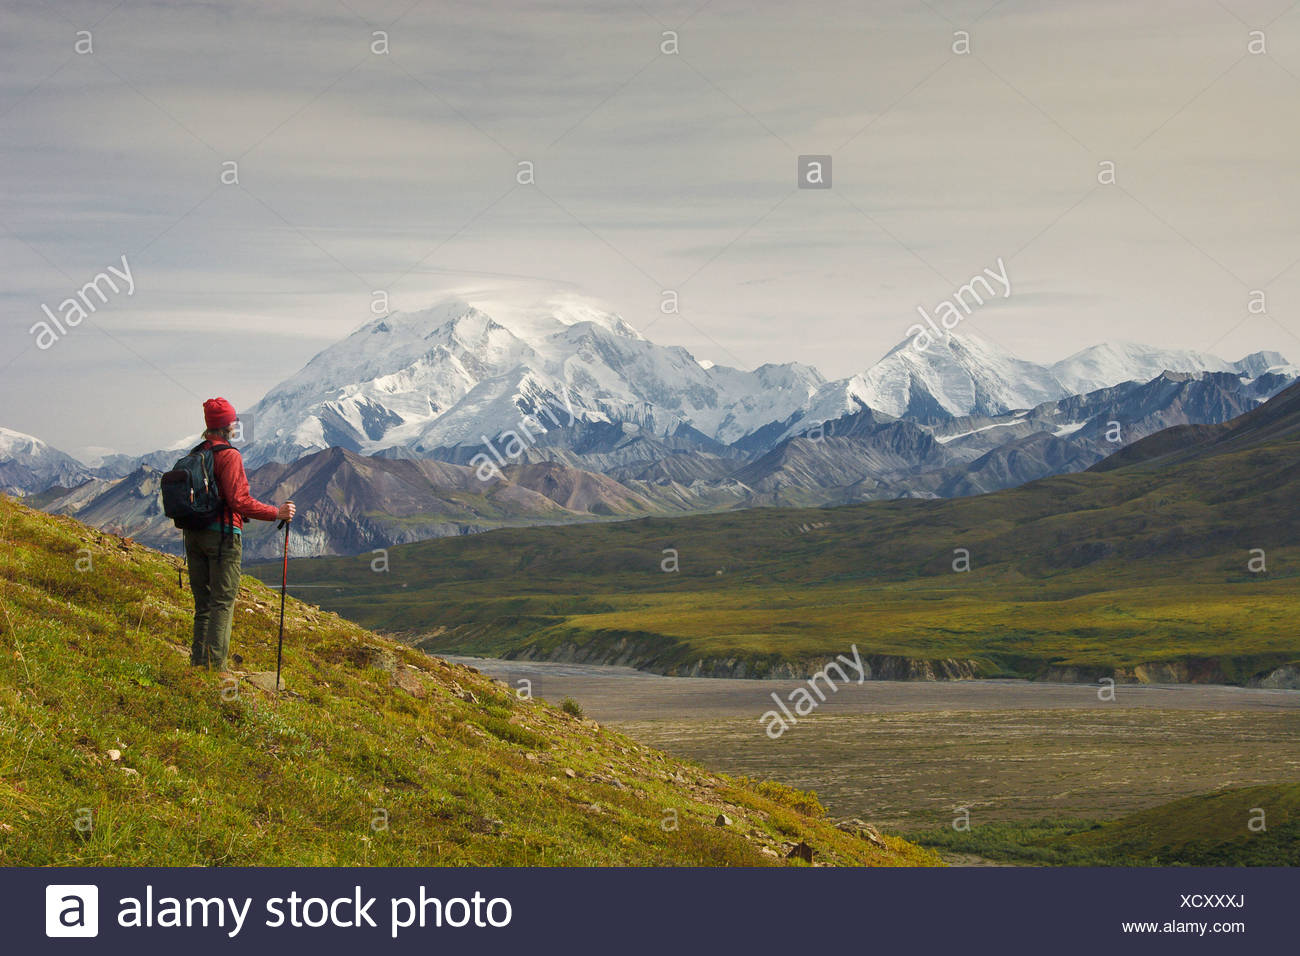 Female hiker views Mt. McKinley in Denali National Park, near Eielson Visitors Center, Alaska, Fall - Stock Image